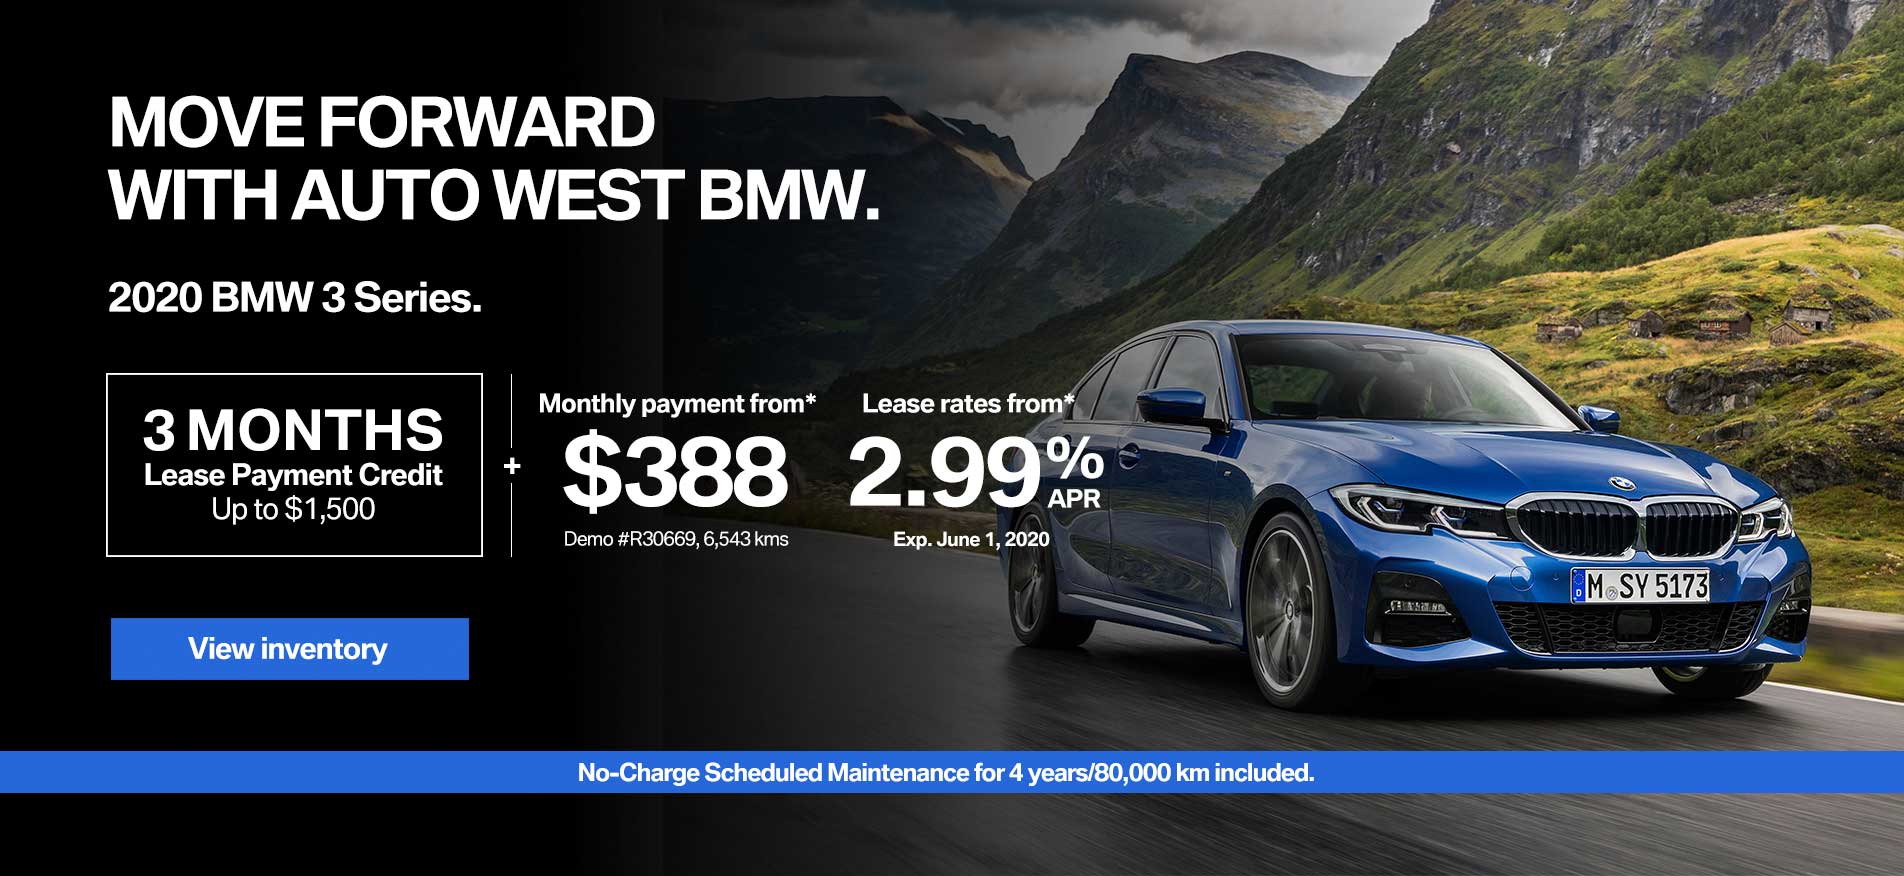 Auto West BMW Lease Payment Credit 3 Series